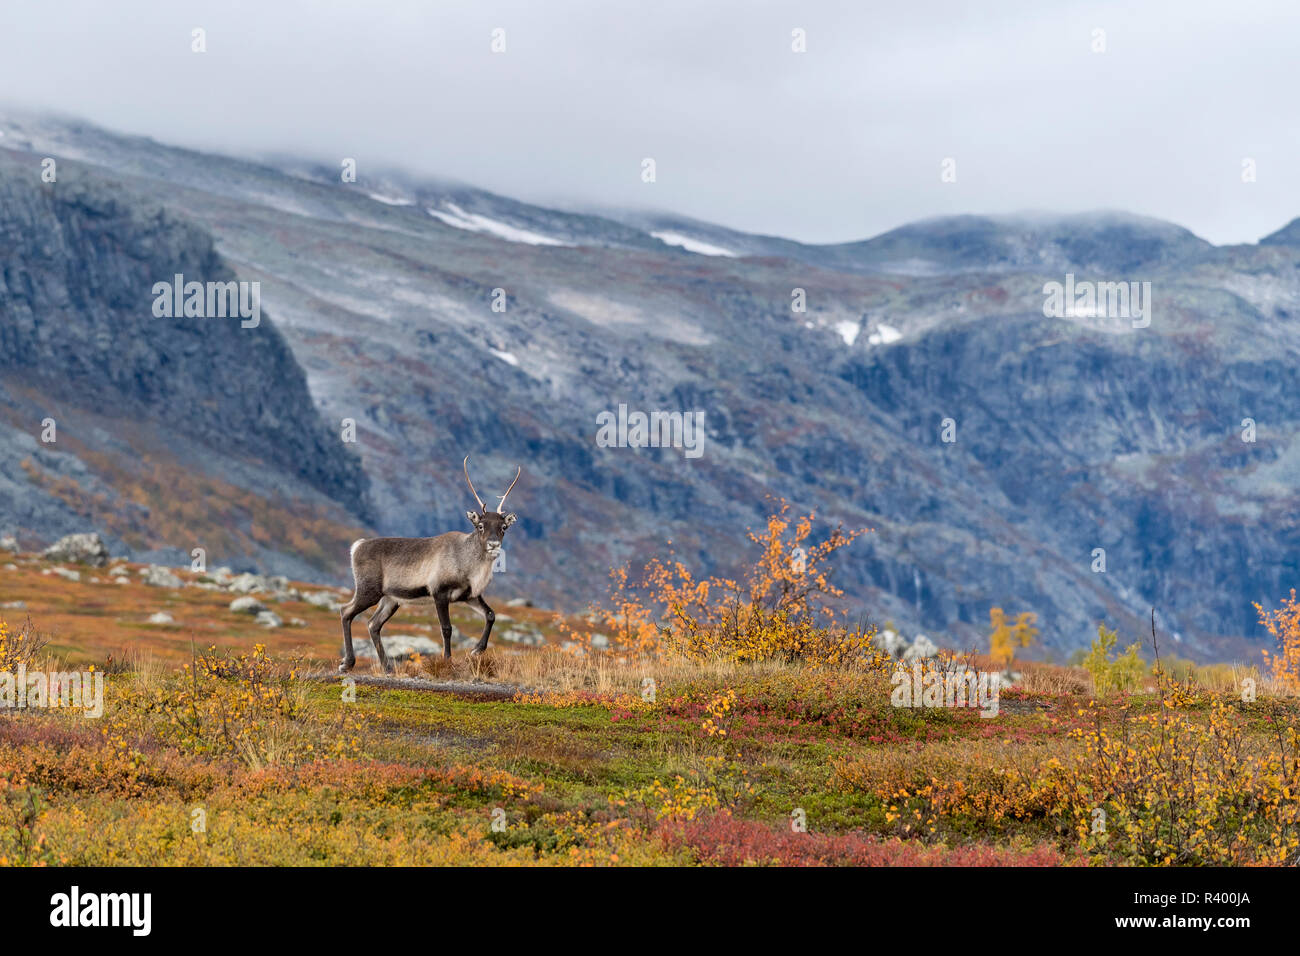 Reindeer (Rangifer tarandus) in autumnal mountain landscape, Stora Sjöfallet National Park, Laponia, Norrbotten, Lapland Stock Photo